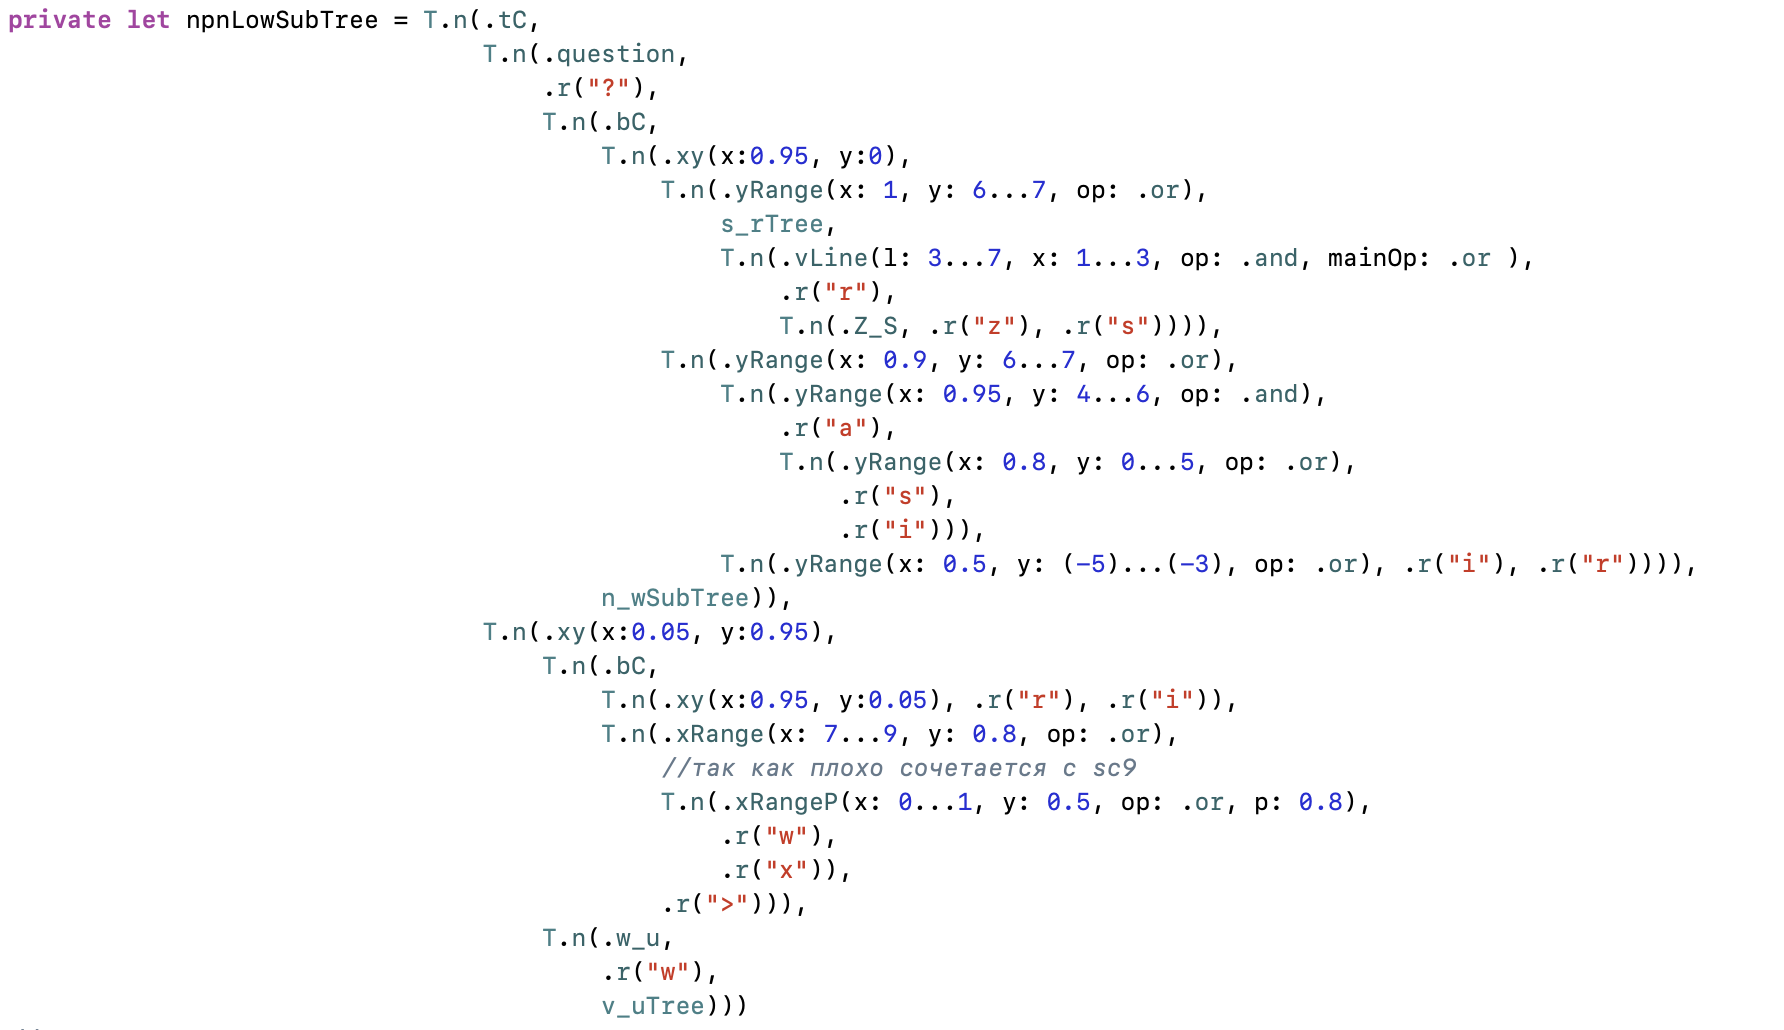 Using a binary tree in swift using enum using OCR as an example